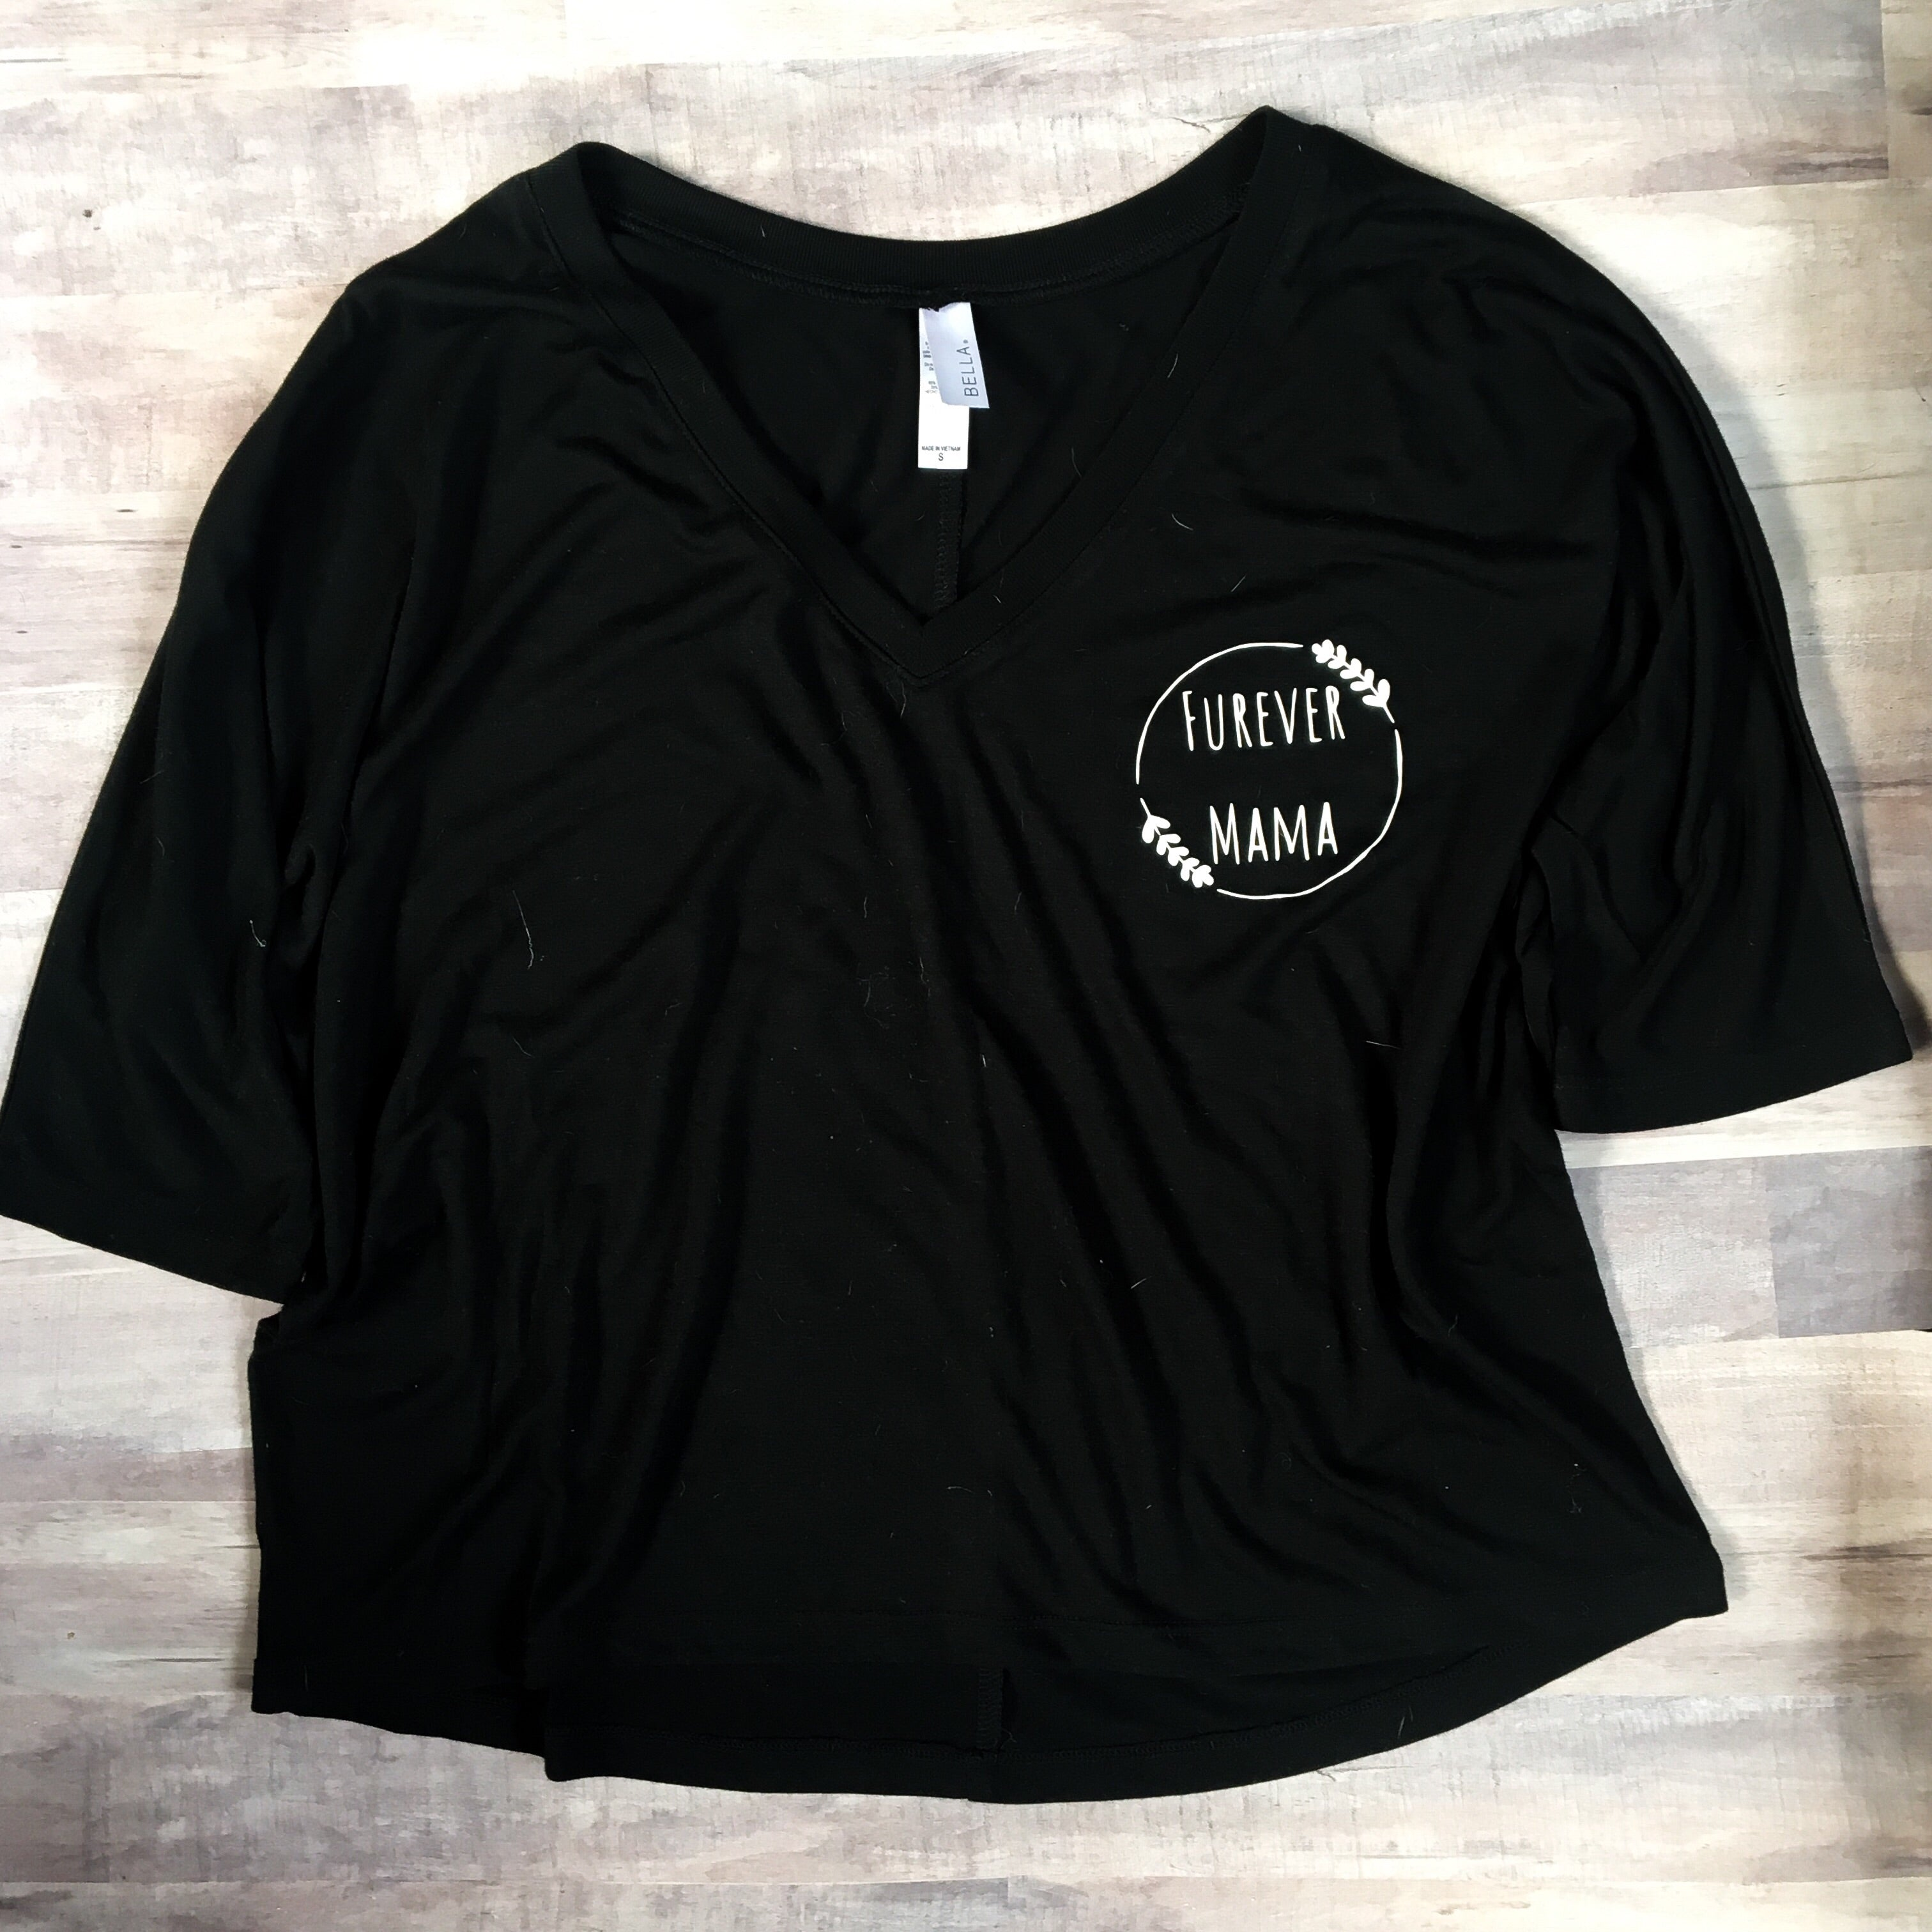 Furever Mama boxy half sleeve in Black with white decal